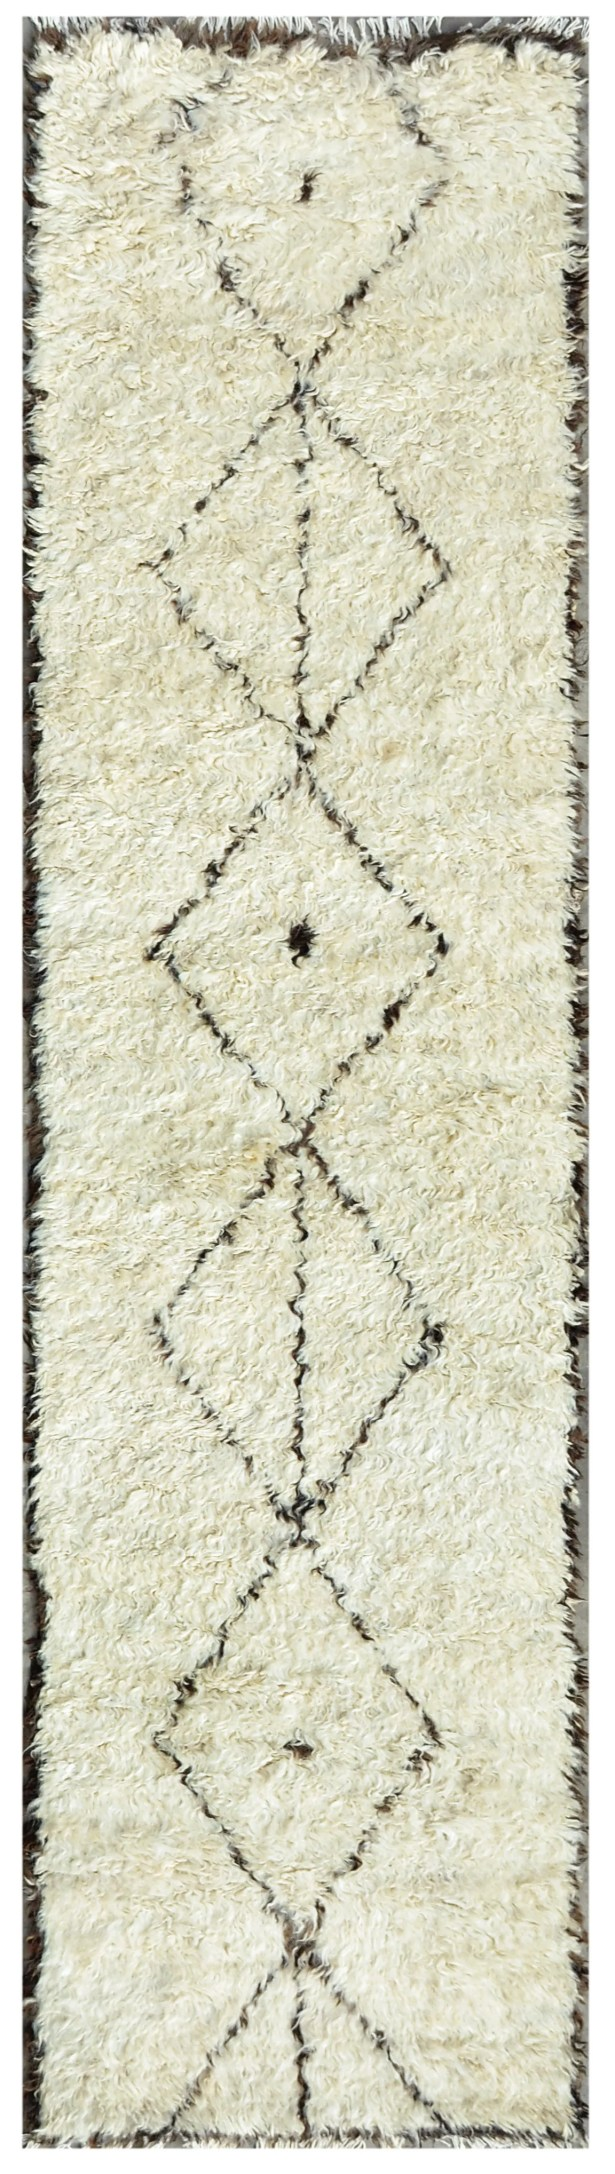 Moroccan Hand-Knotted Ivory Area Rug Rug Size: Runner 2'7